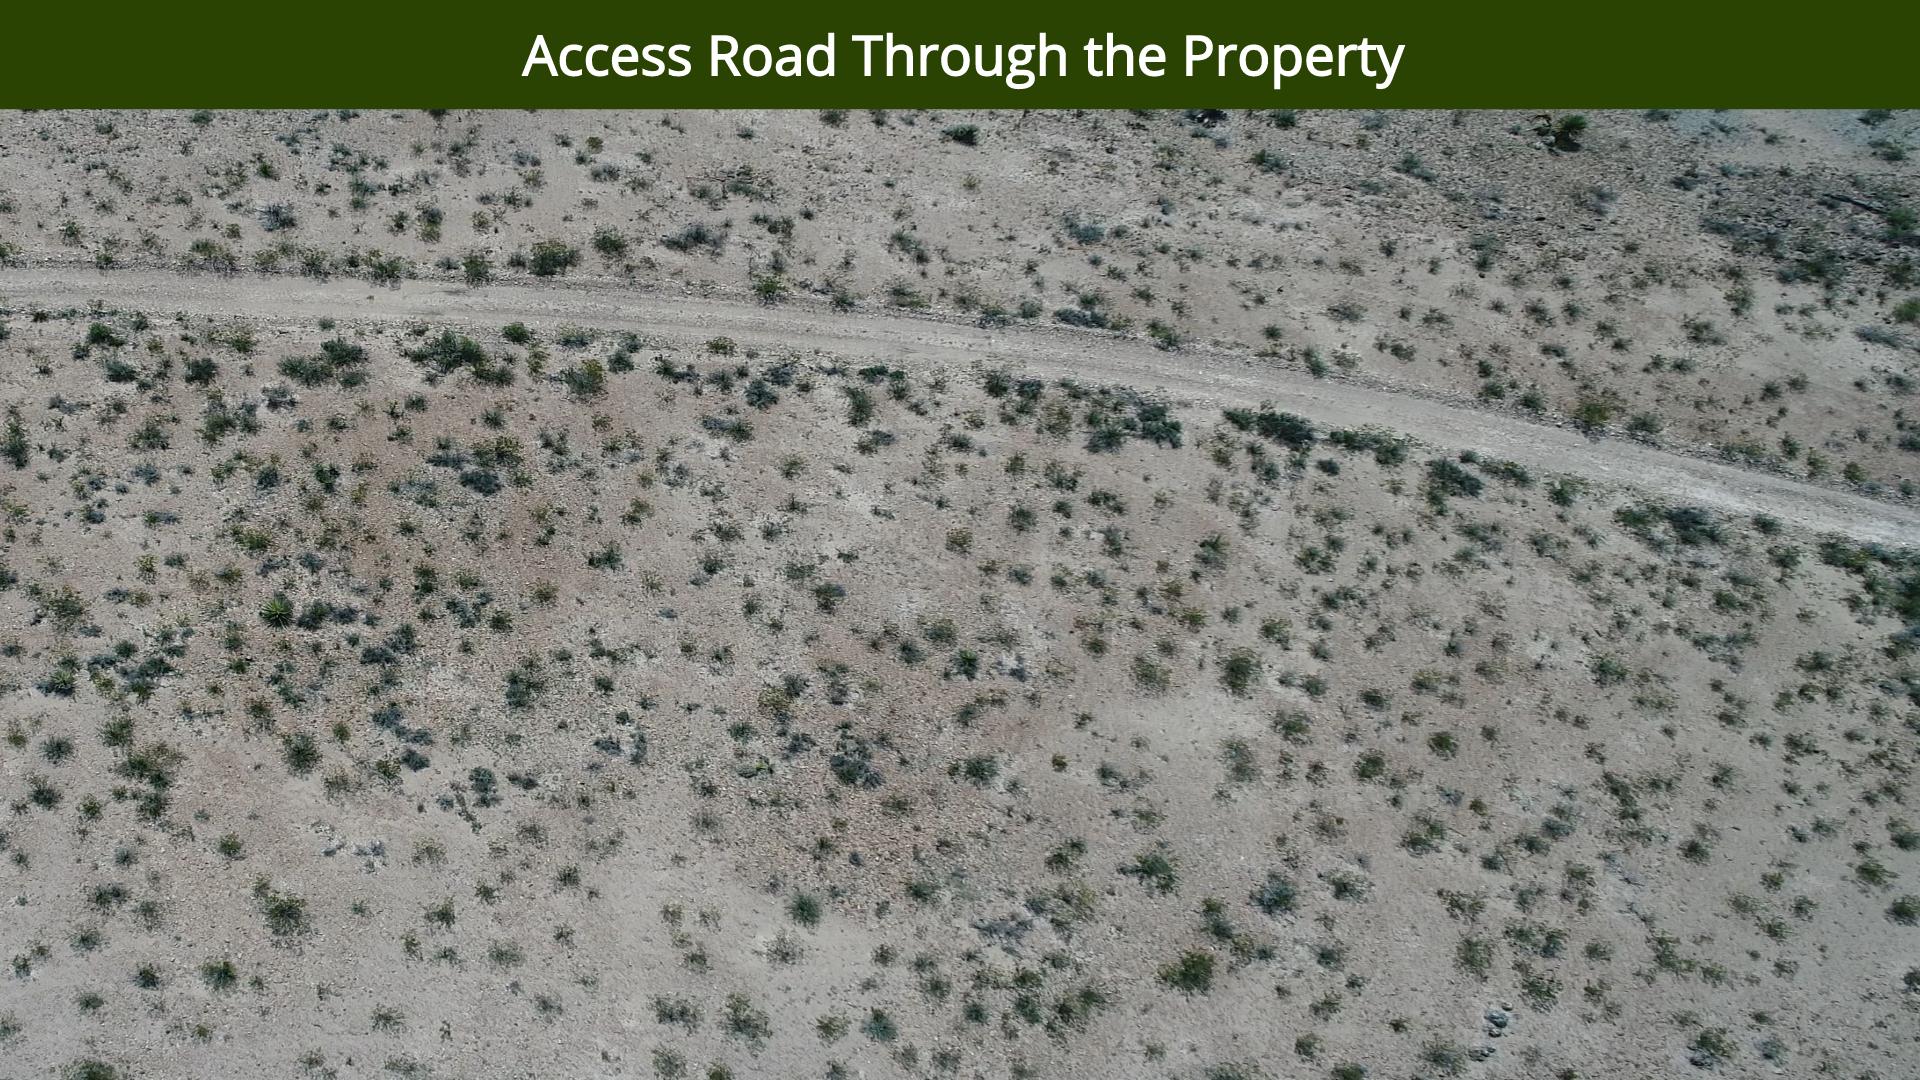 Access Road Through the Property